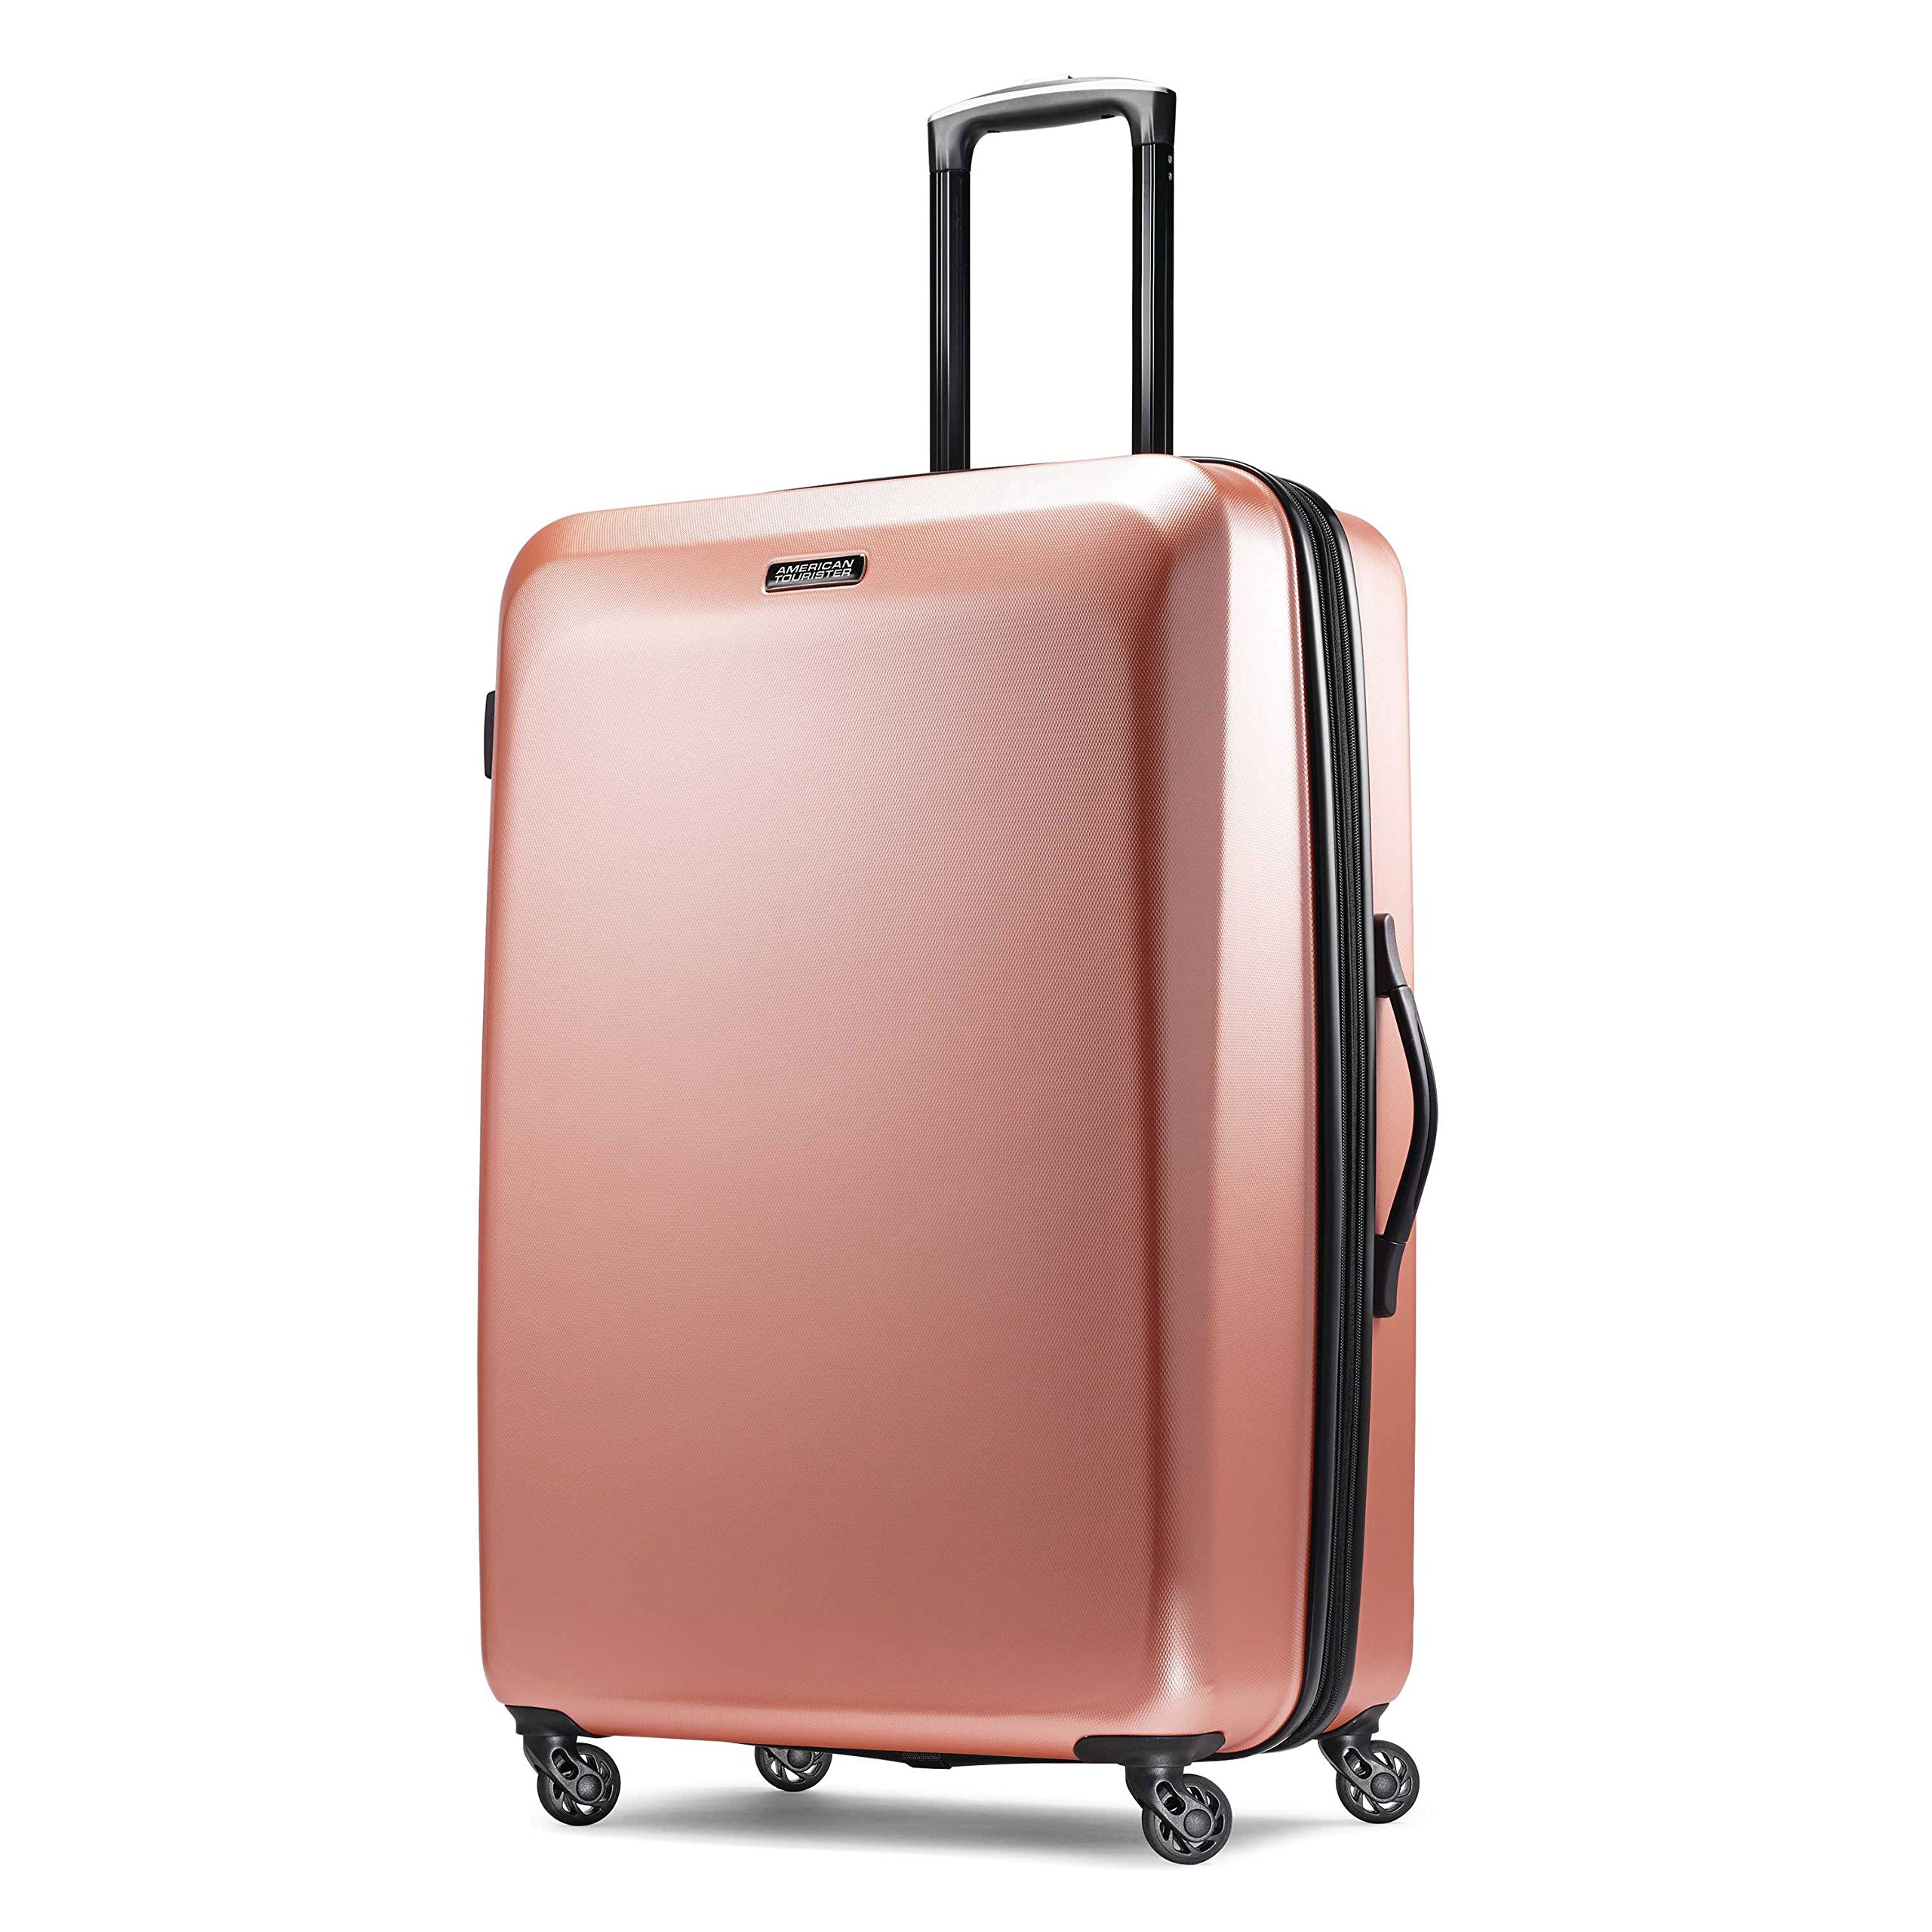 American Tourister Checked-Large, Rose Gold by American Tourister